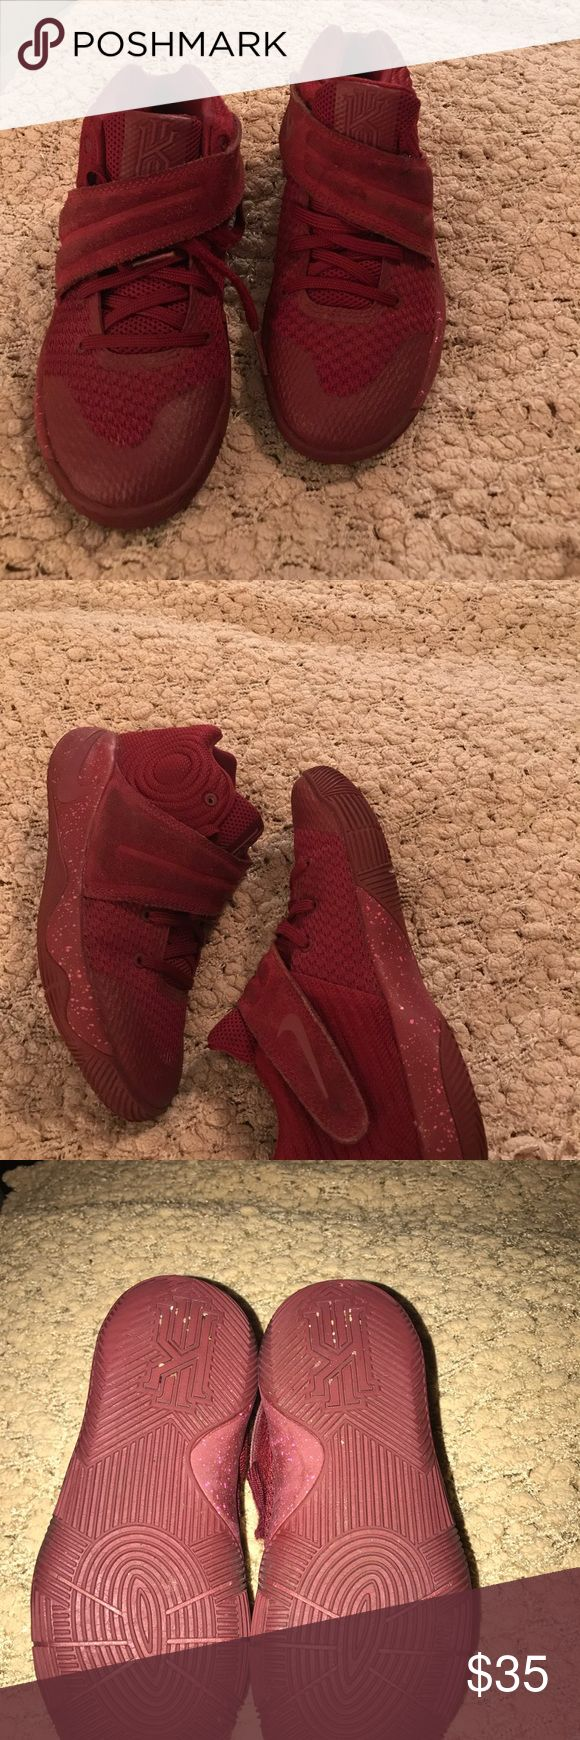 Kyrie Irving 2 Good condition the suede cross strap is a little dirty but other than no flaws only worn about 5 times Nike Shoes Sneakers